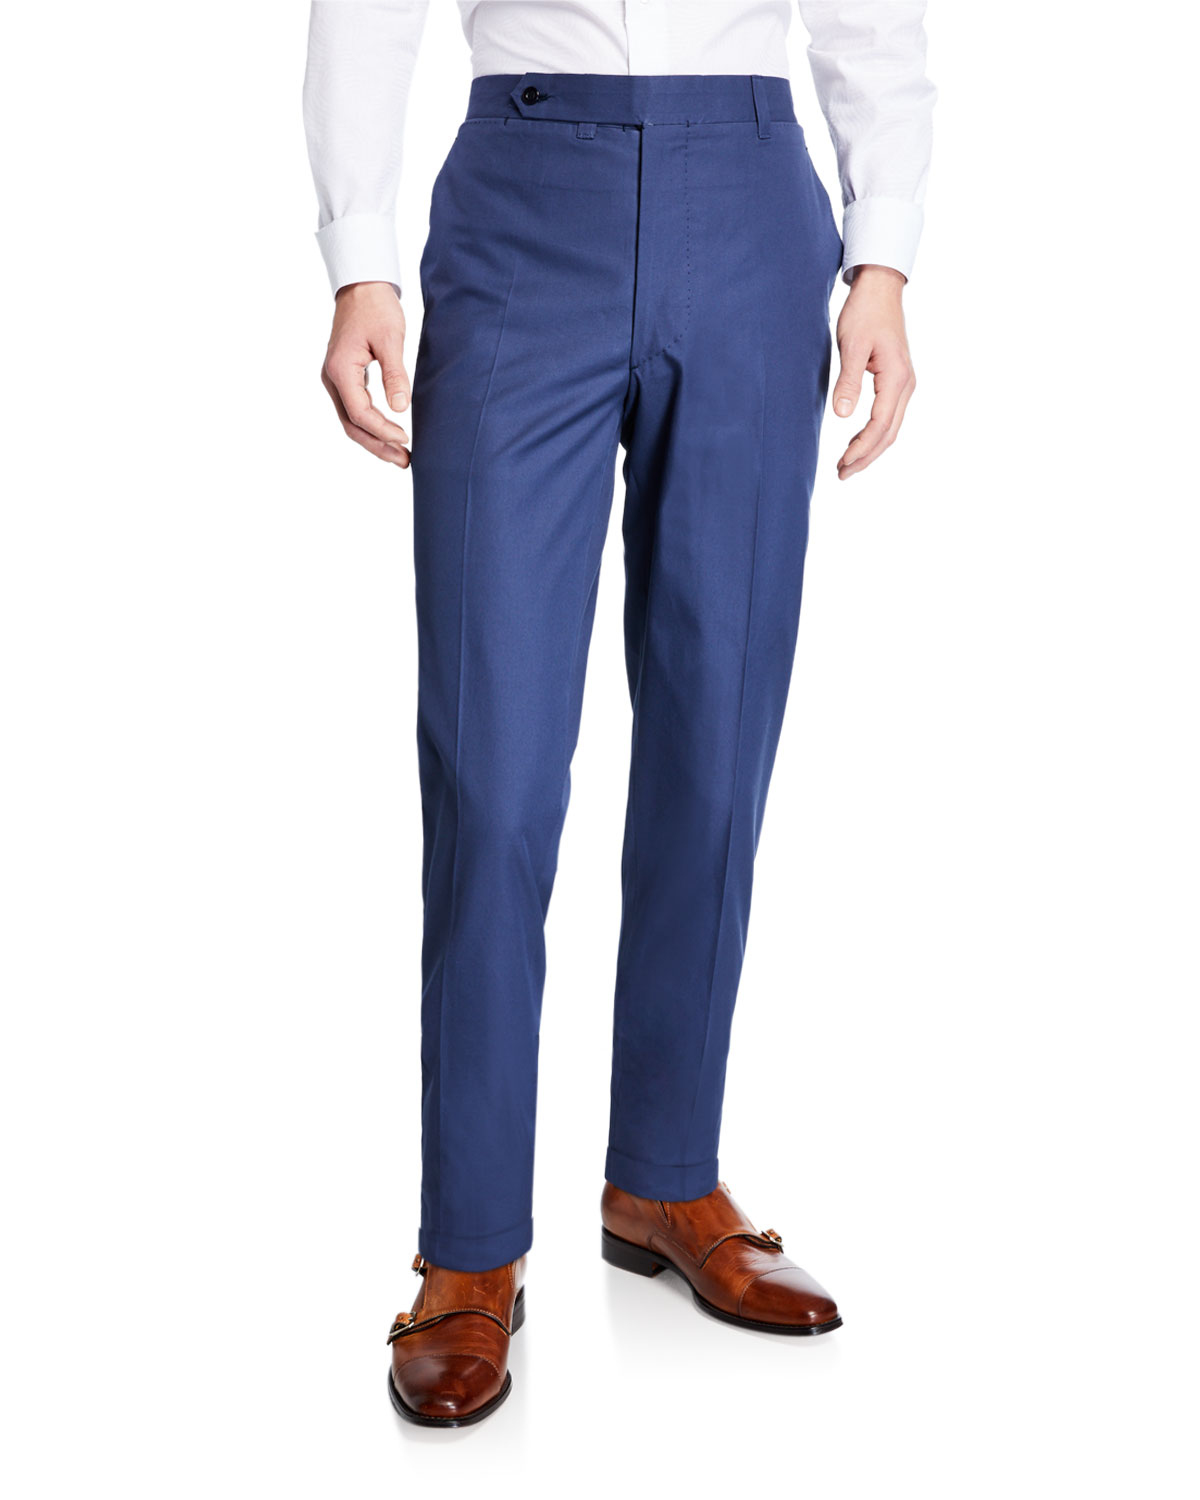 Ambrosi Napoli Navy Blue Flat-Front Twill Trousers